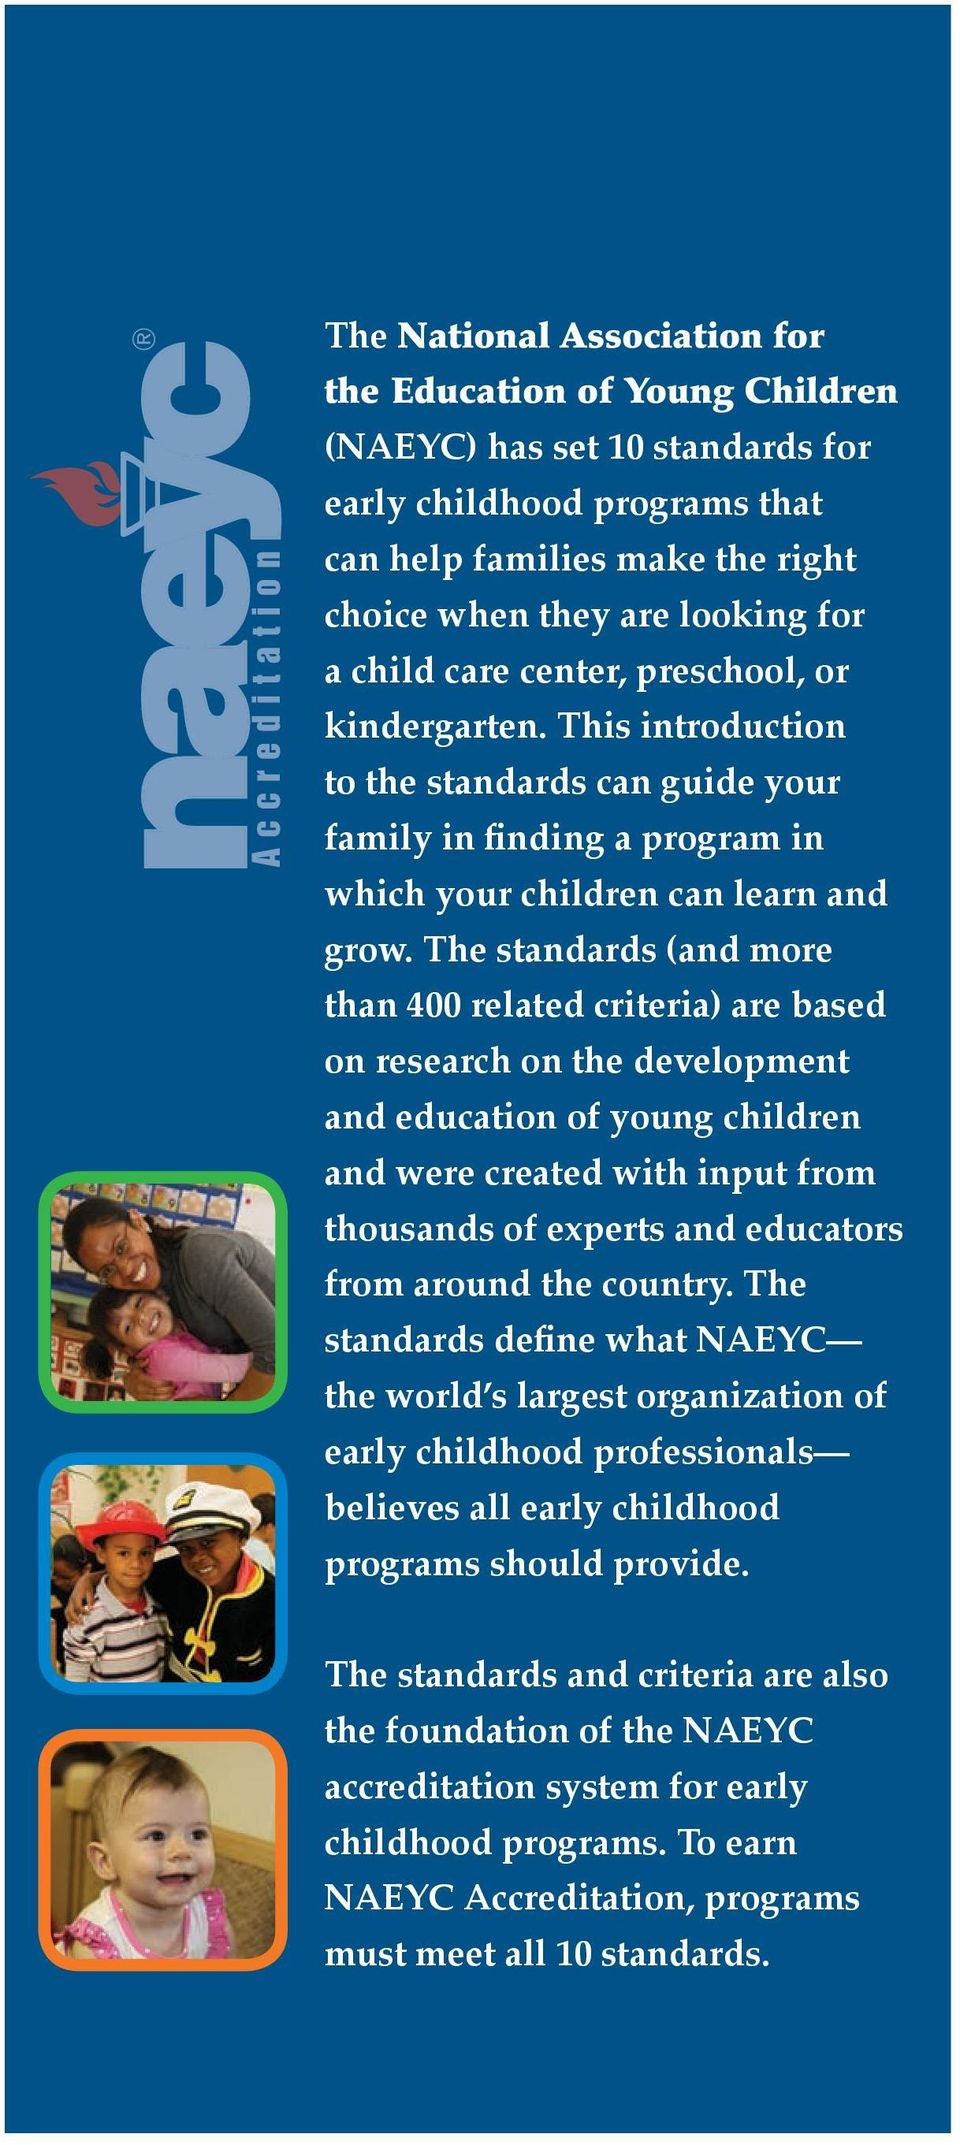 The standards (and more than 400 related criteria) are based on research on the development and education of young children and were created with input from thousands of experts and educators from